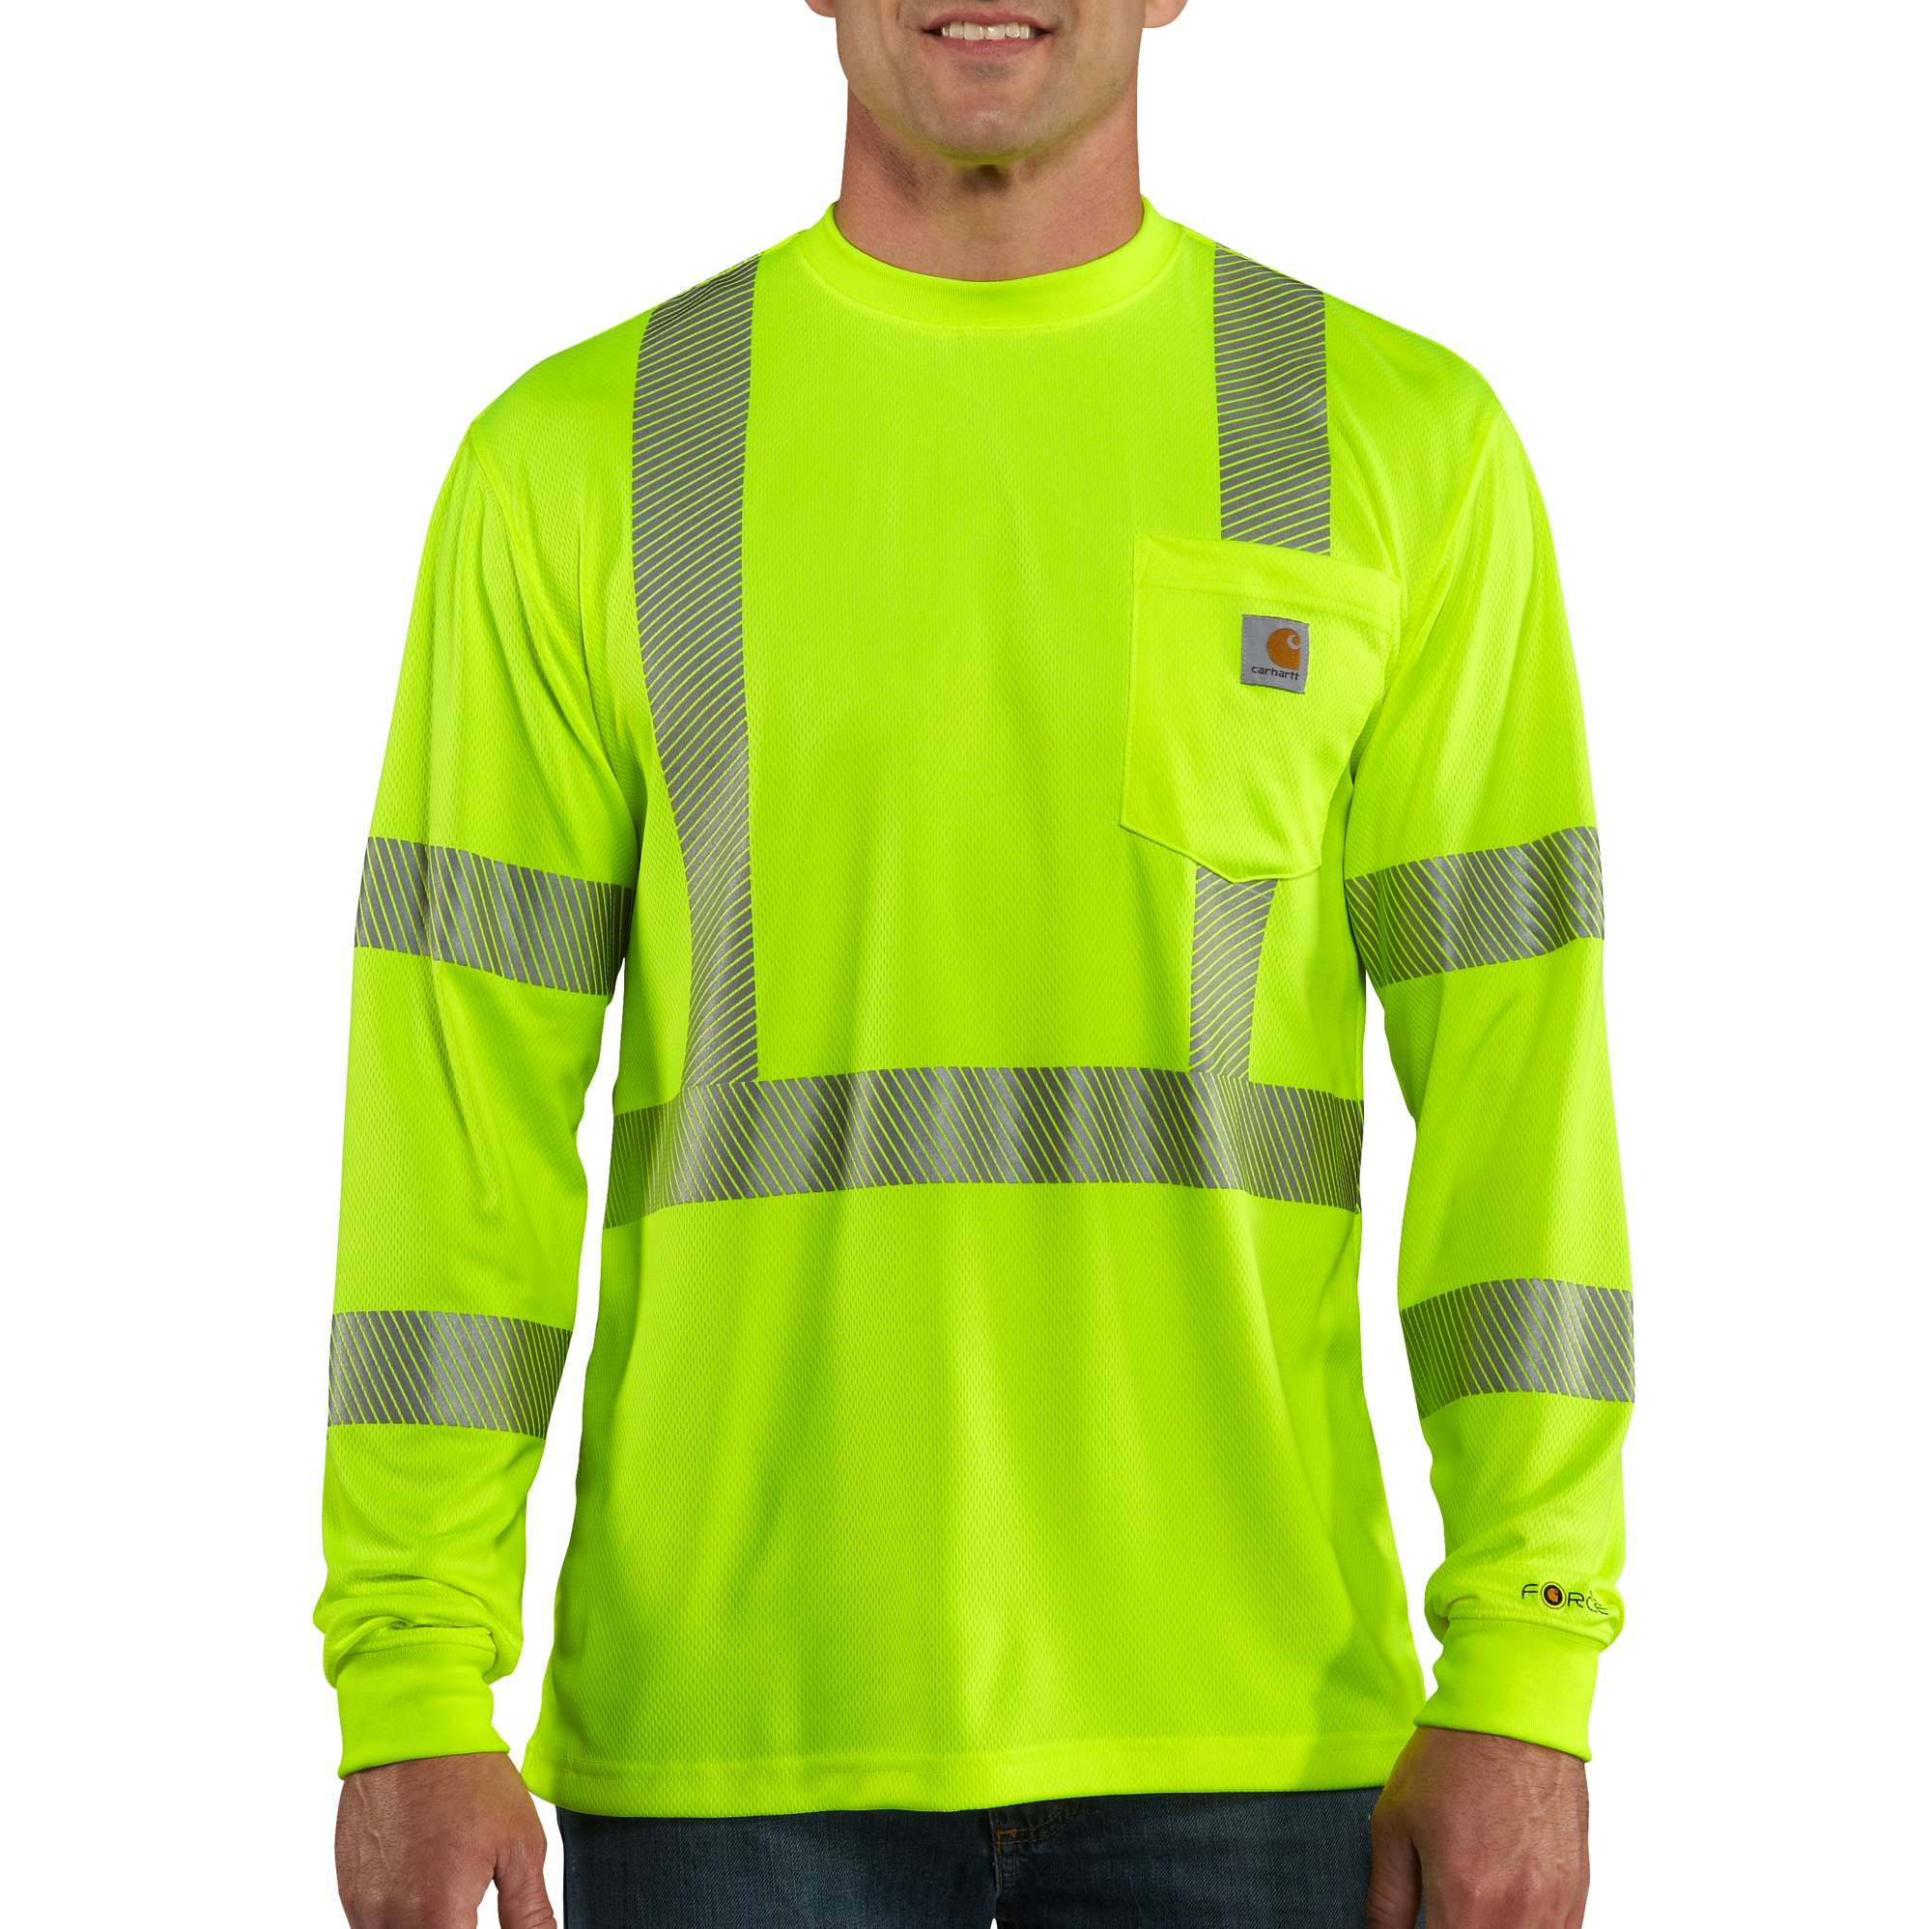 Carhartt Carhartt Force High-visibility Long-sleeve Class 3 T-shirt